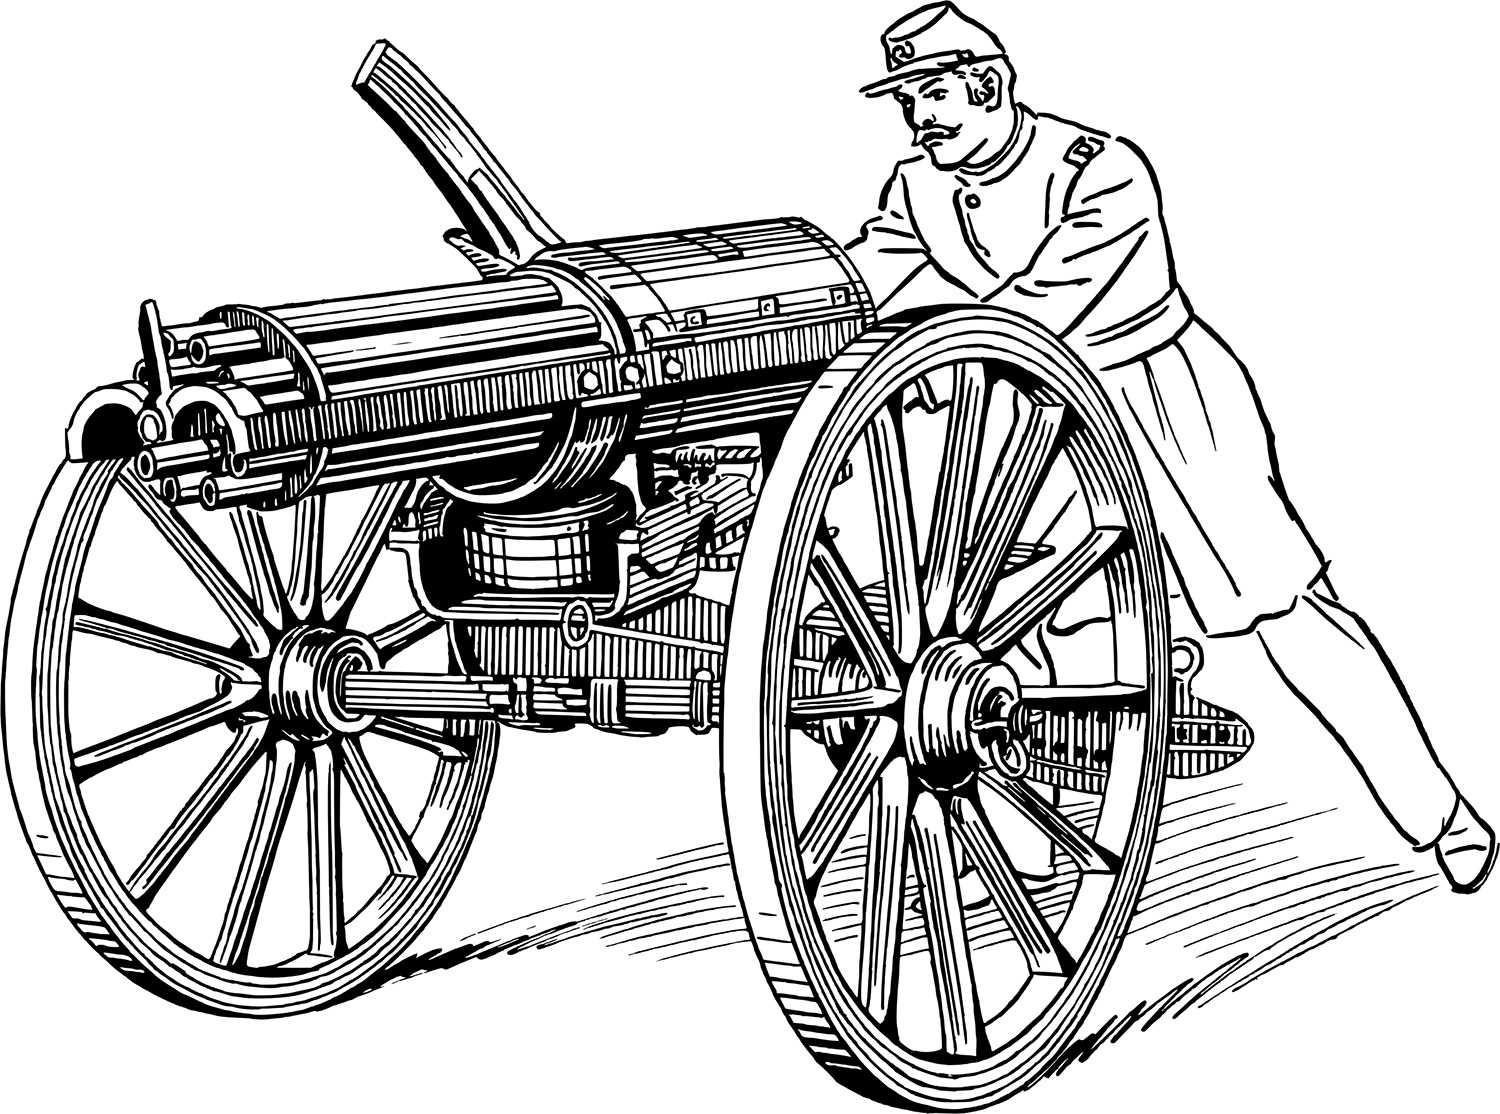 Some Strange Weapons Produced By The American Civil War